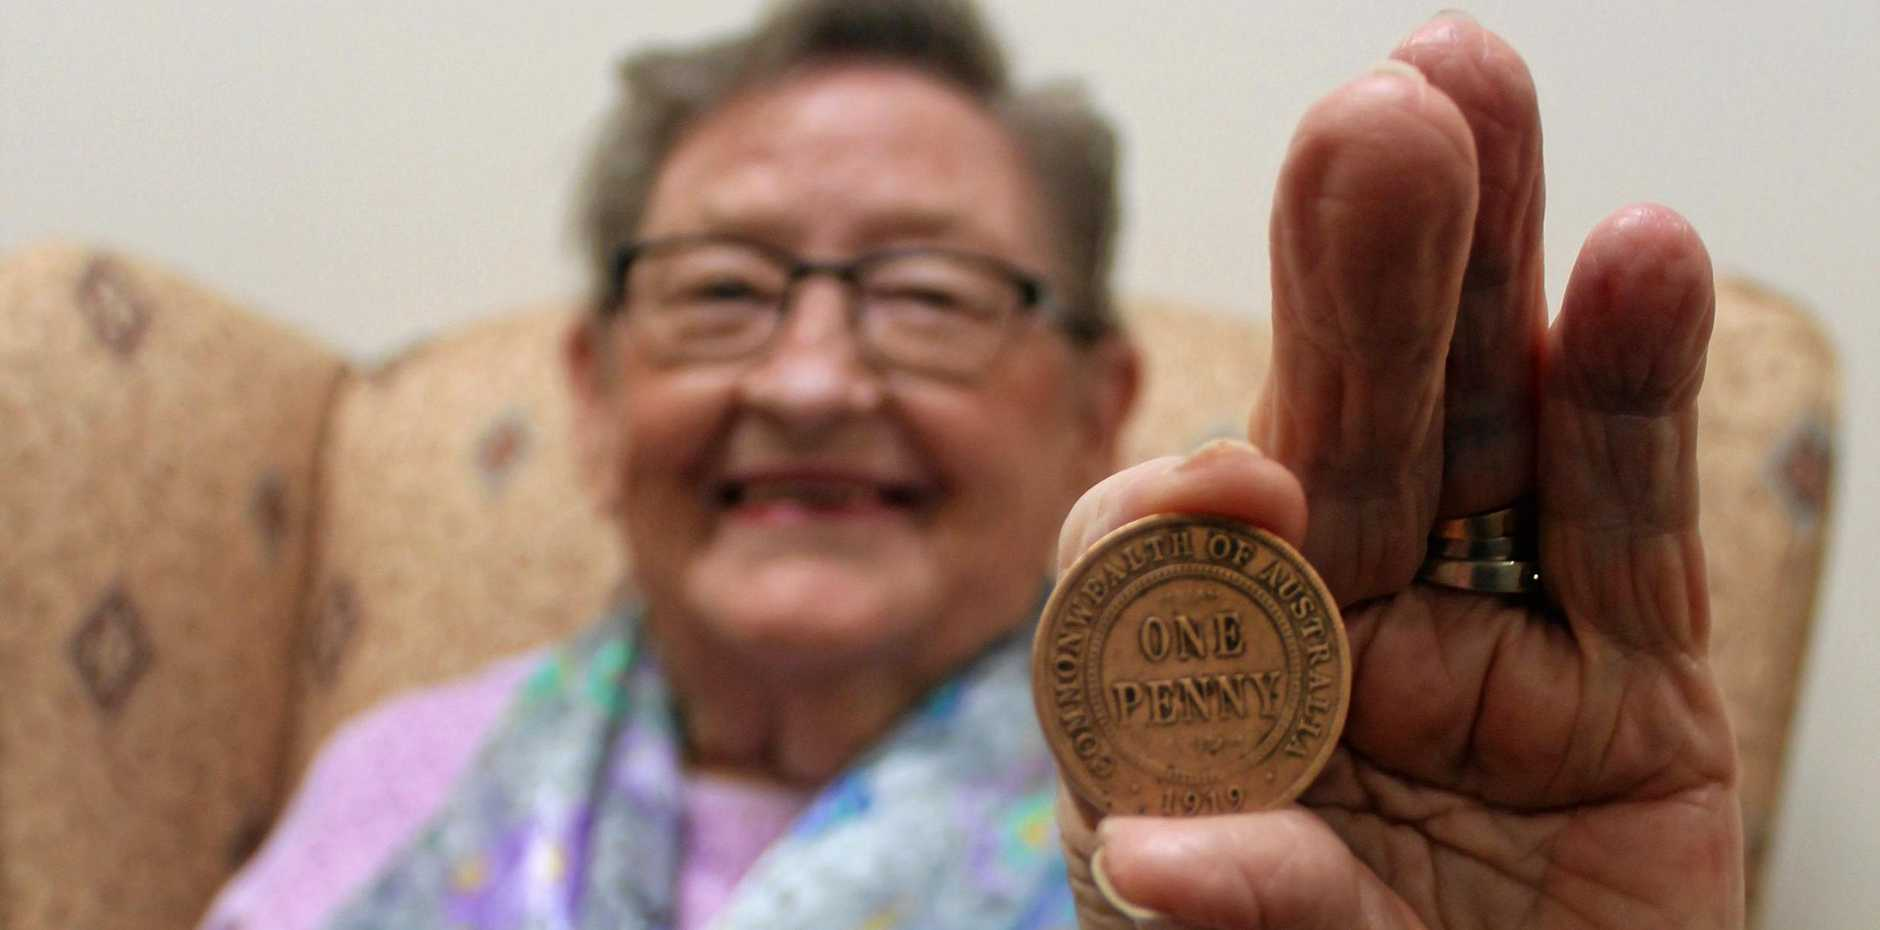 100-year-old coin found, but Val's 'not worried' about value